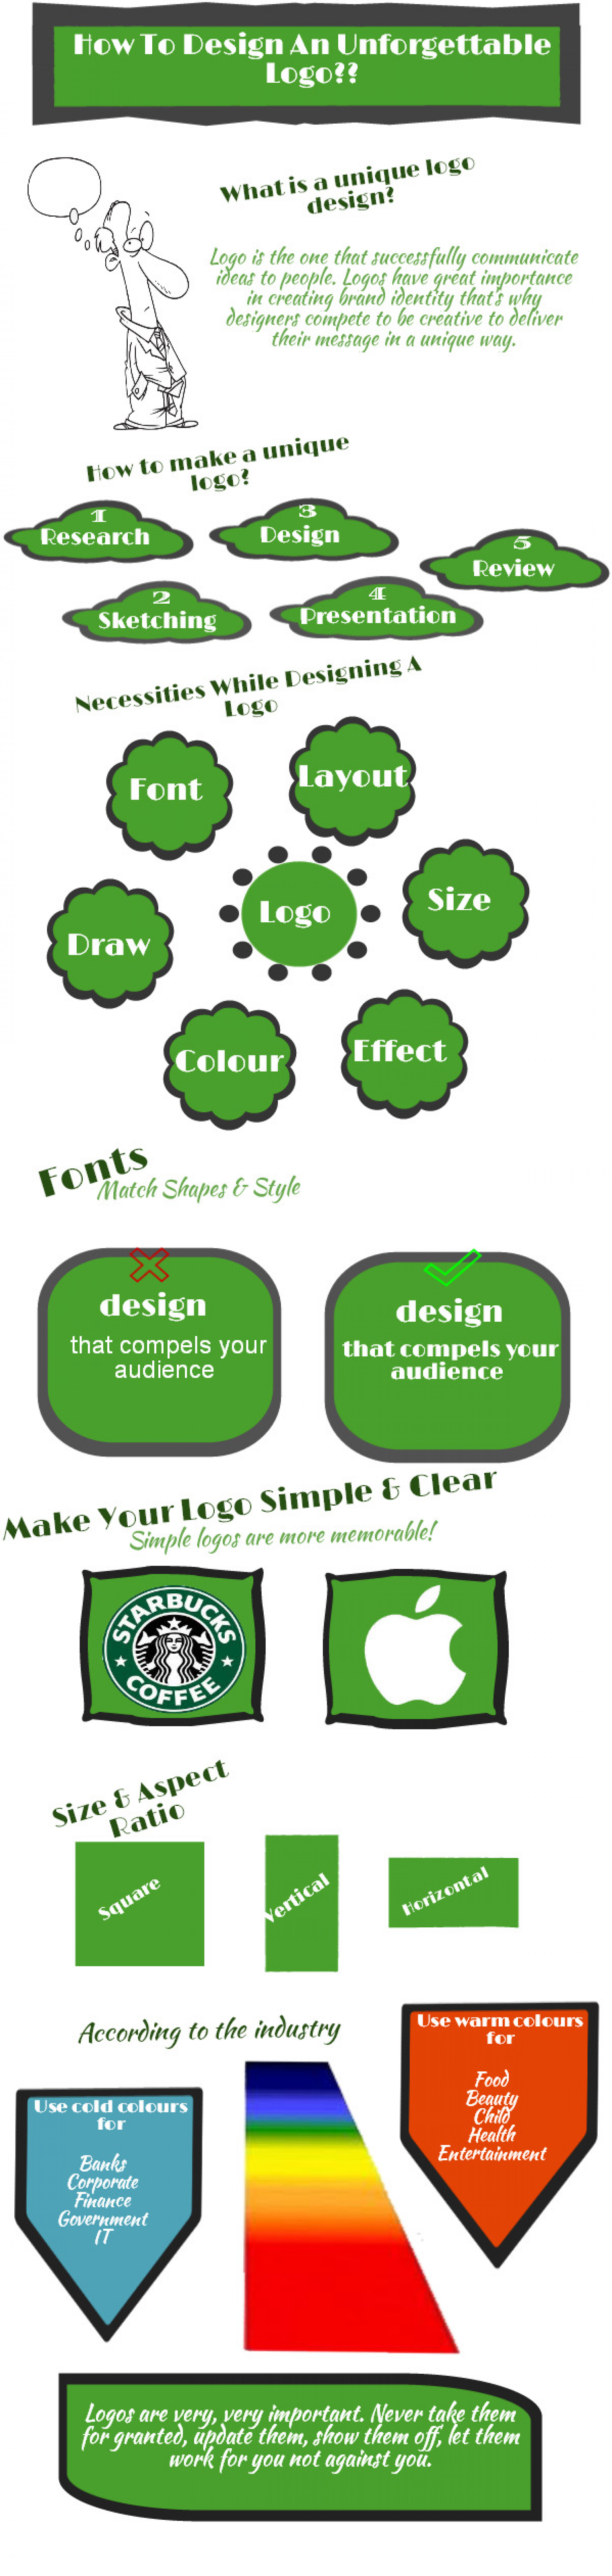 How To Design An Unforgettable logo ?? Infographic